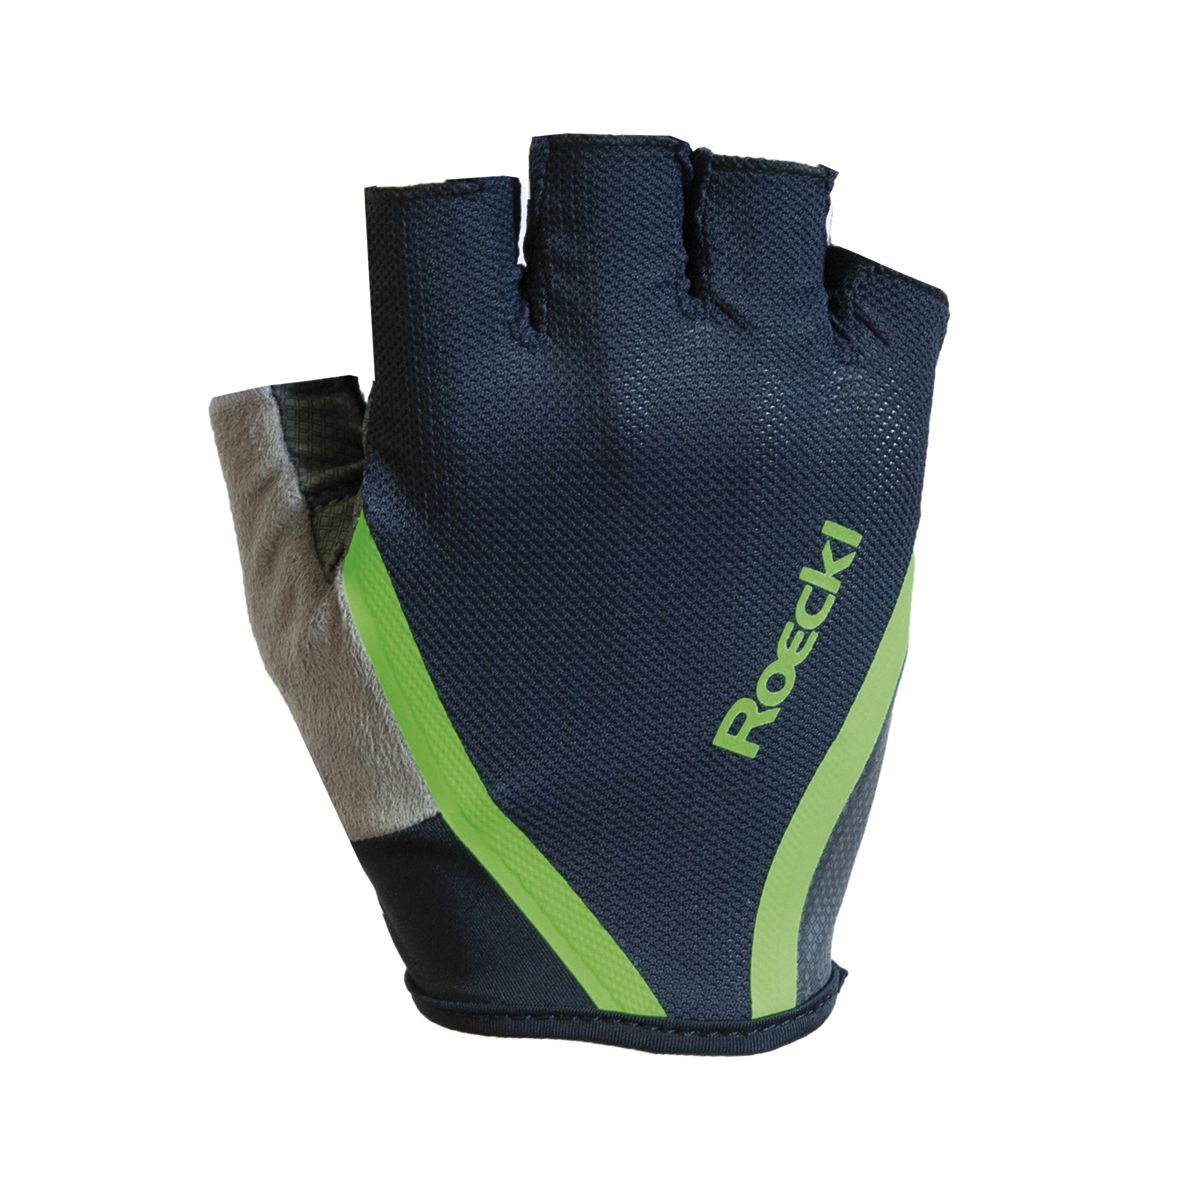 BREMEN Cycling Gloves